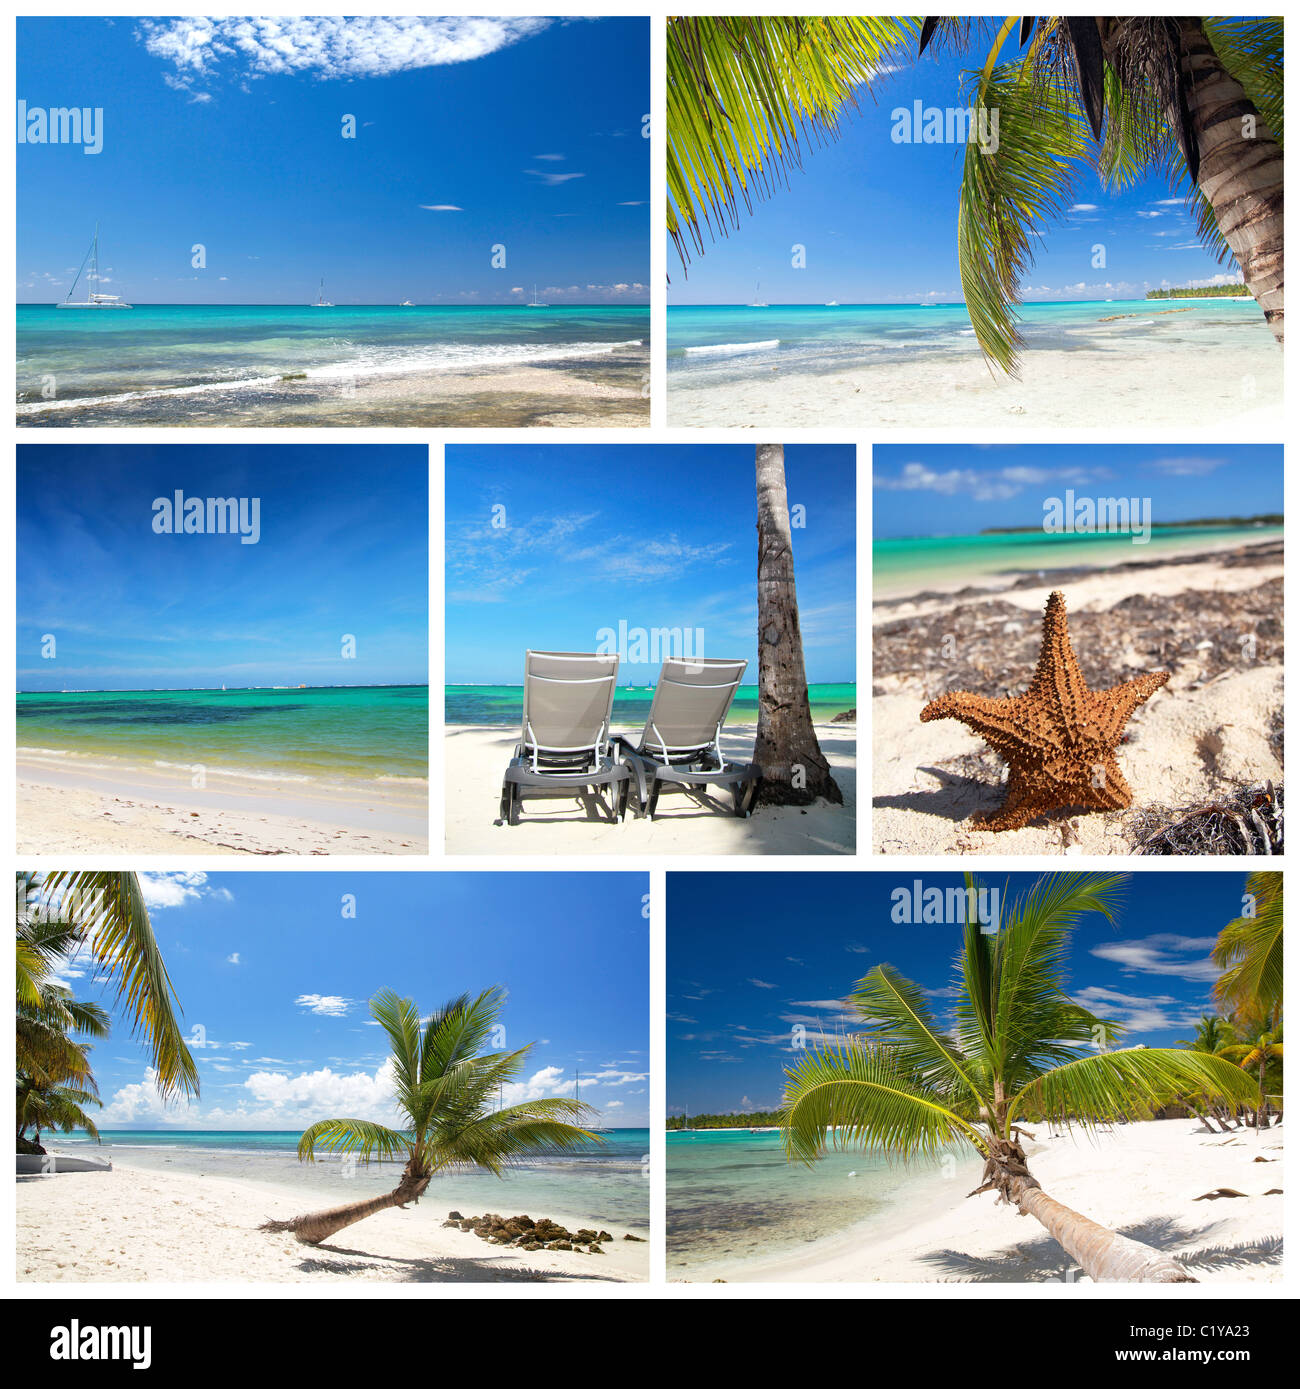 Collage Von Sommer Strand Bilder Strand Und Tropischen Meer Tropical Beach Collage Stockfotos Tropical Beach Collage Bilder